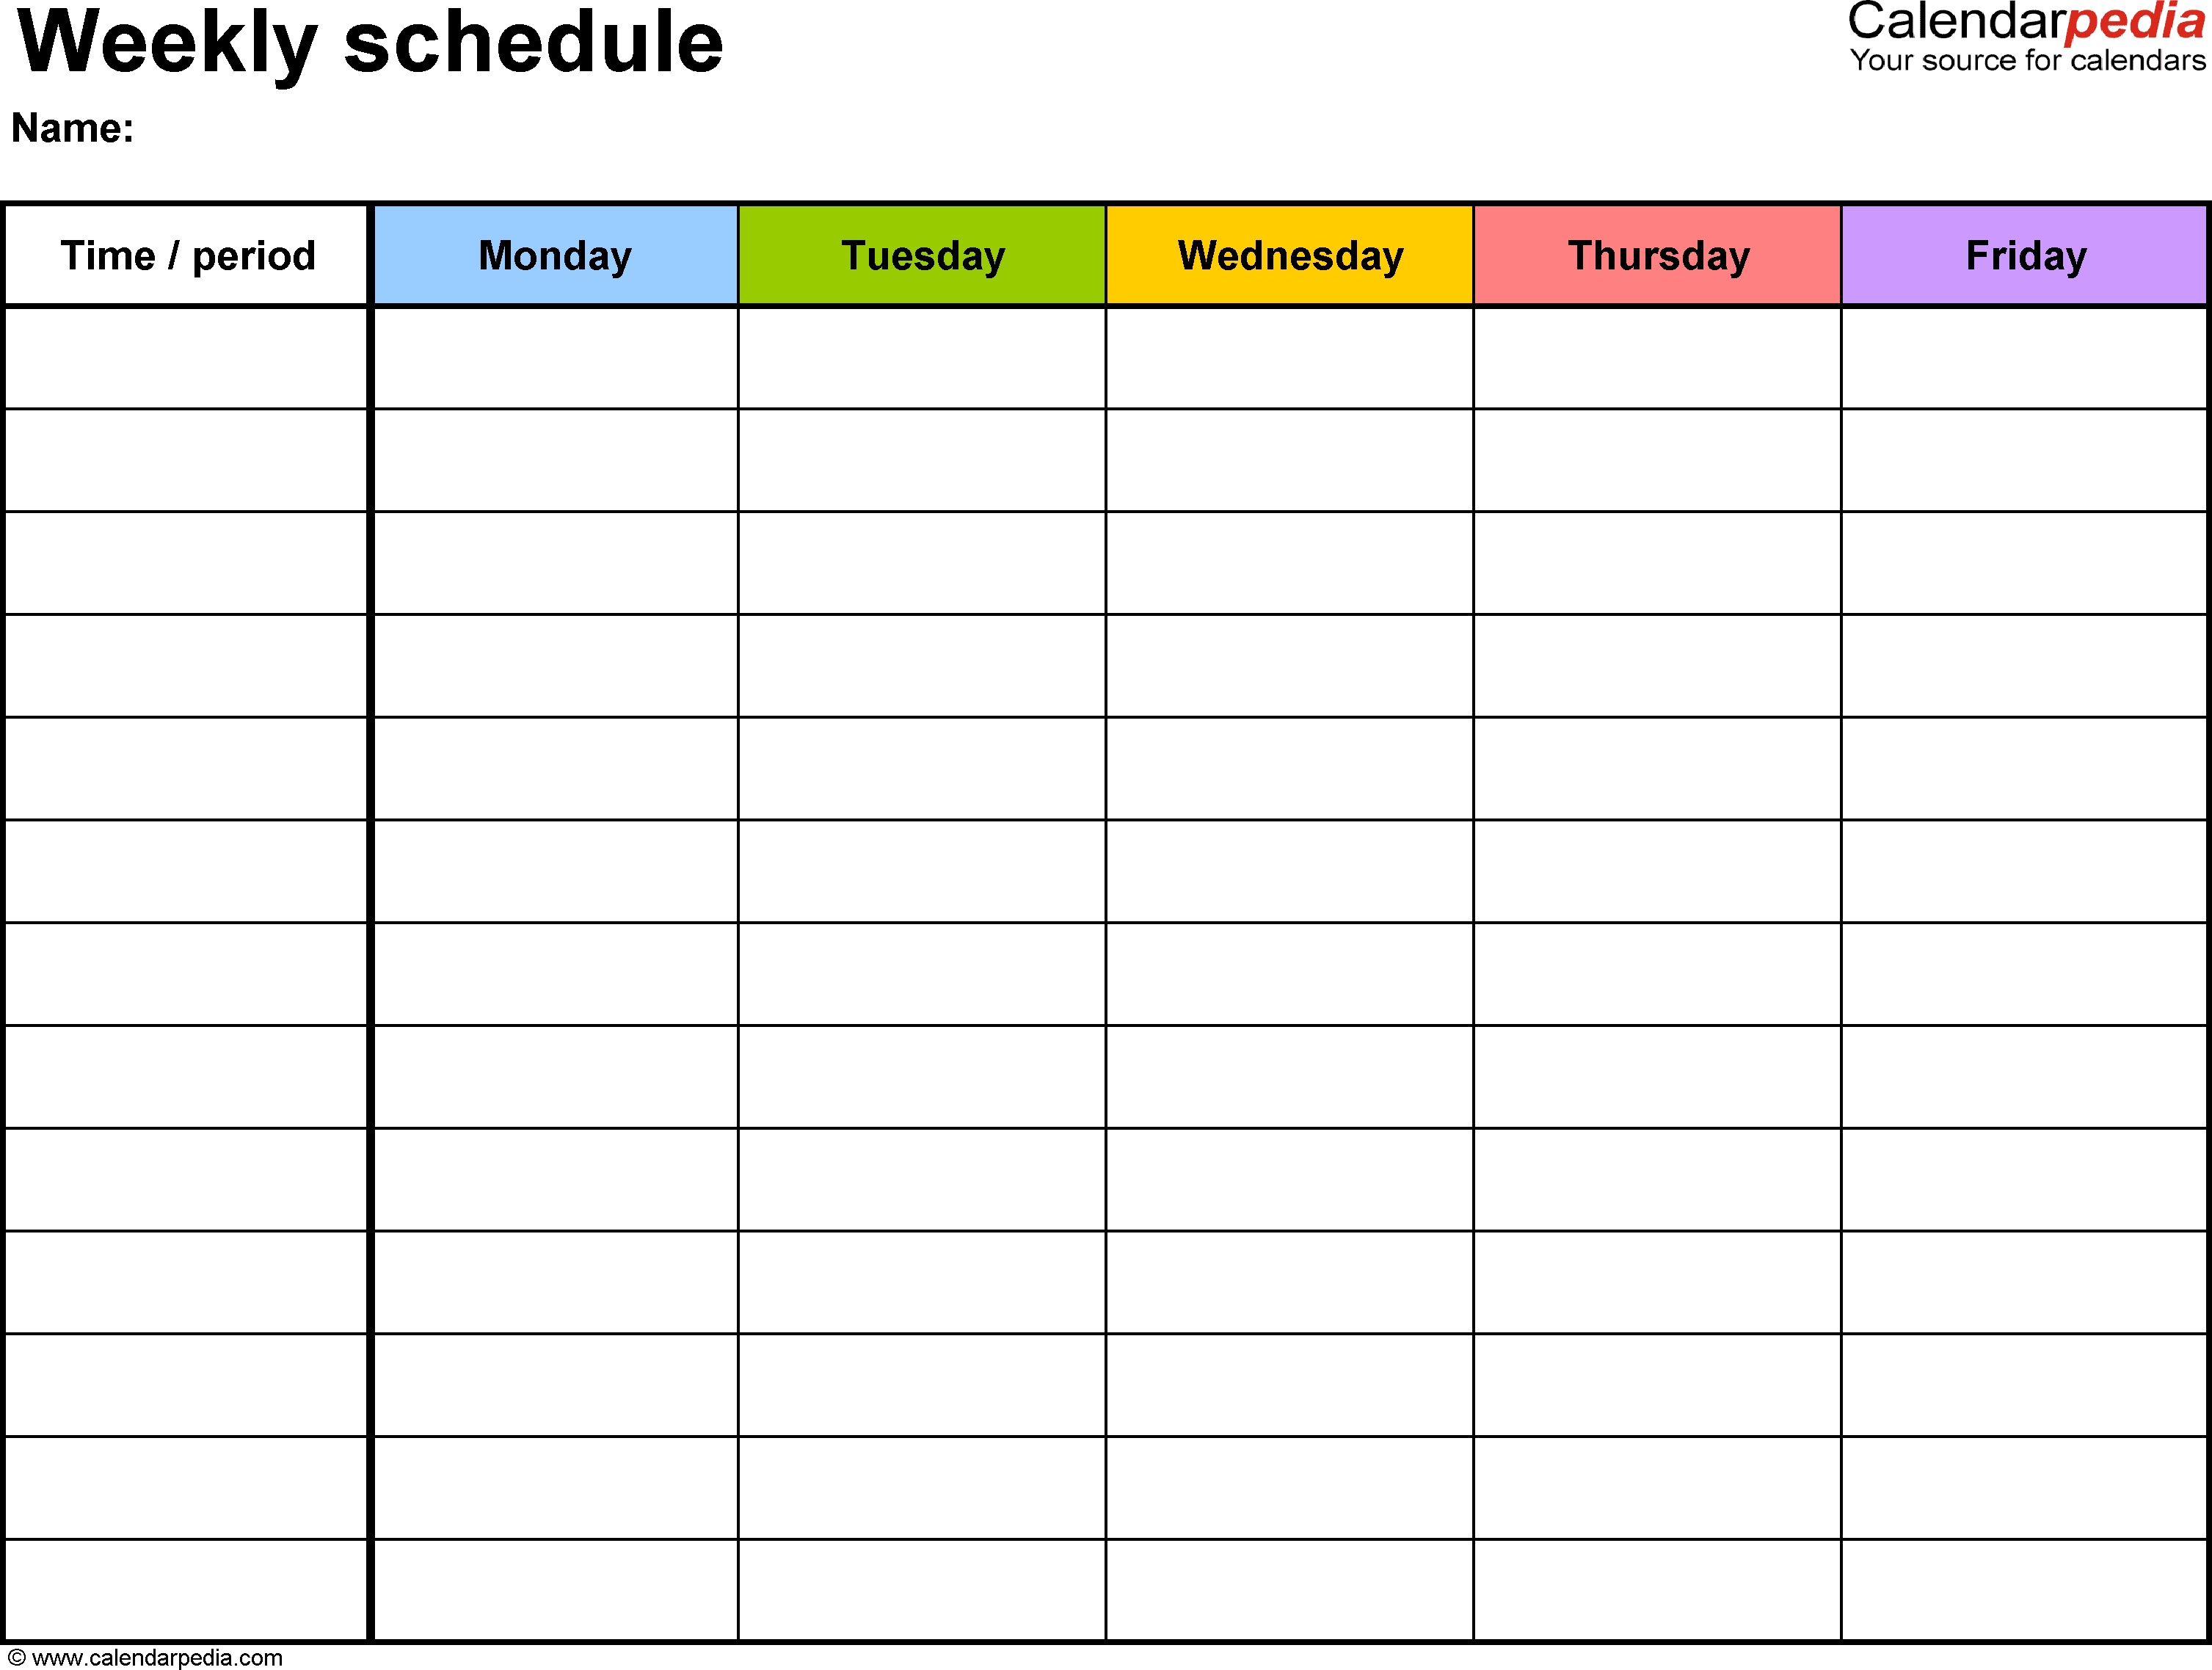 Free Weekly Schedule Templates For Word - 18 Templates  Large Empty Monthly Calendar Monday Start